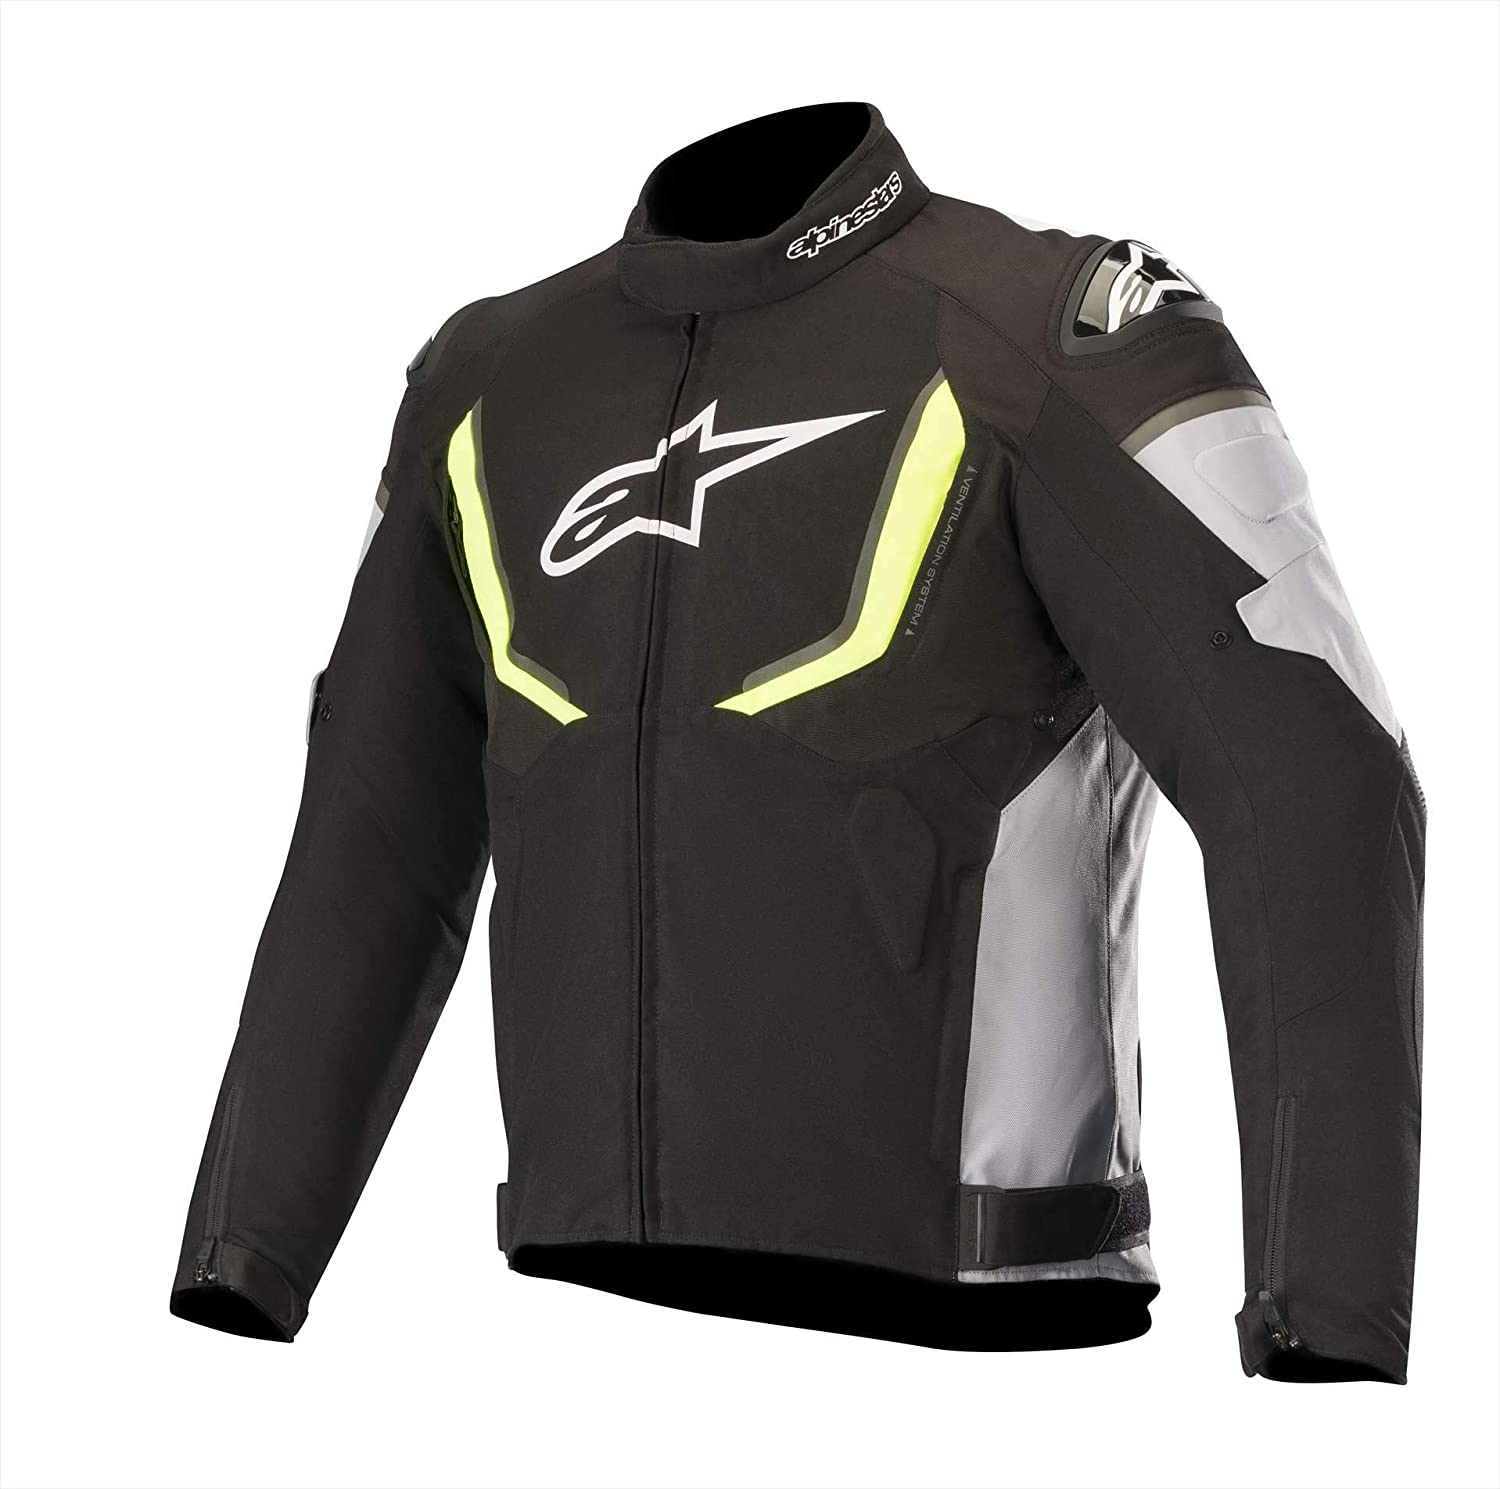 Alpinestars T-GP R V2 Waterproof Street Jacket-Black/Gray/Yellow Fluo-2XL